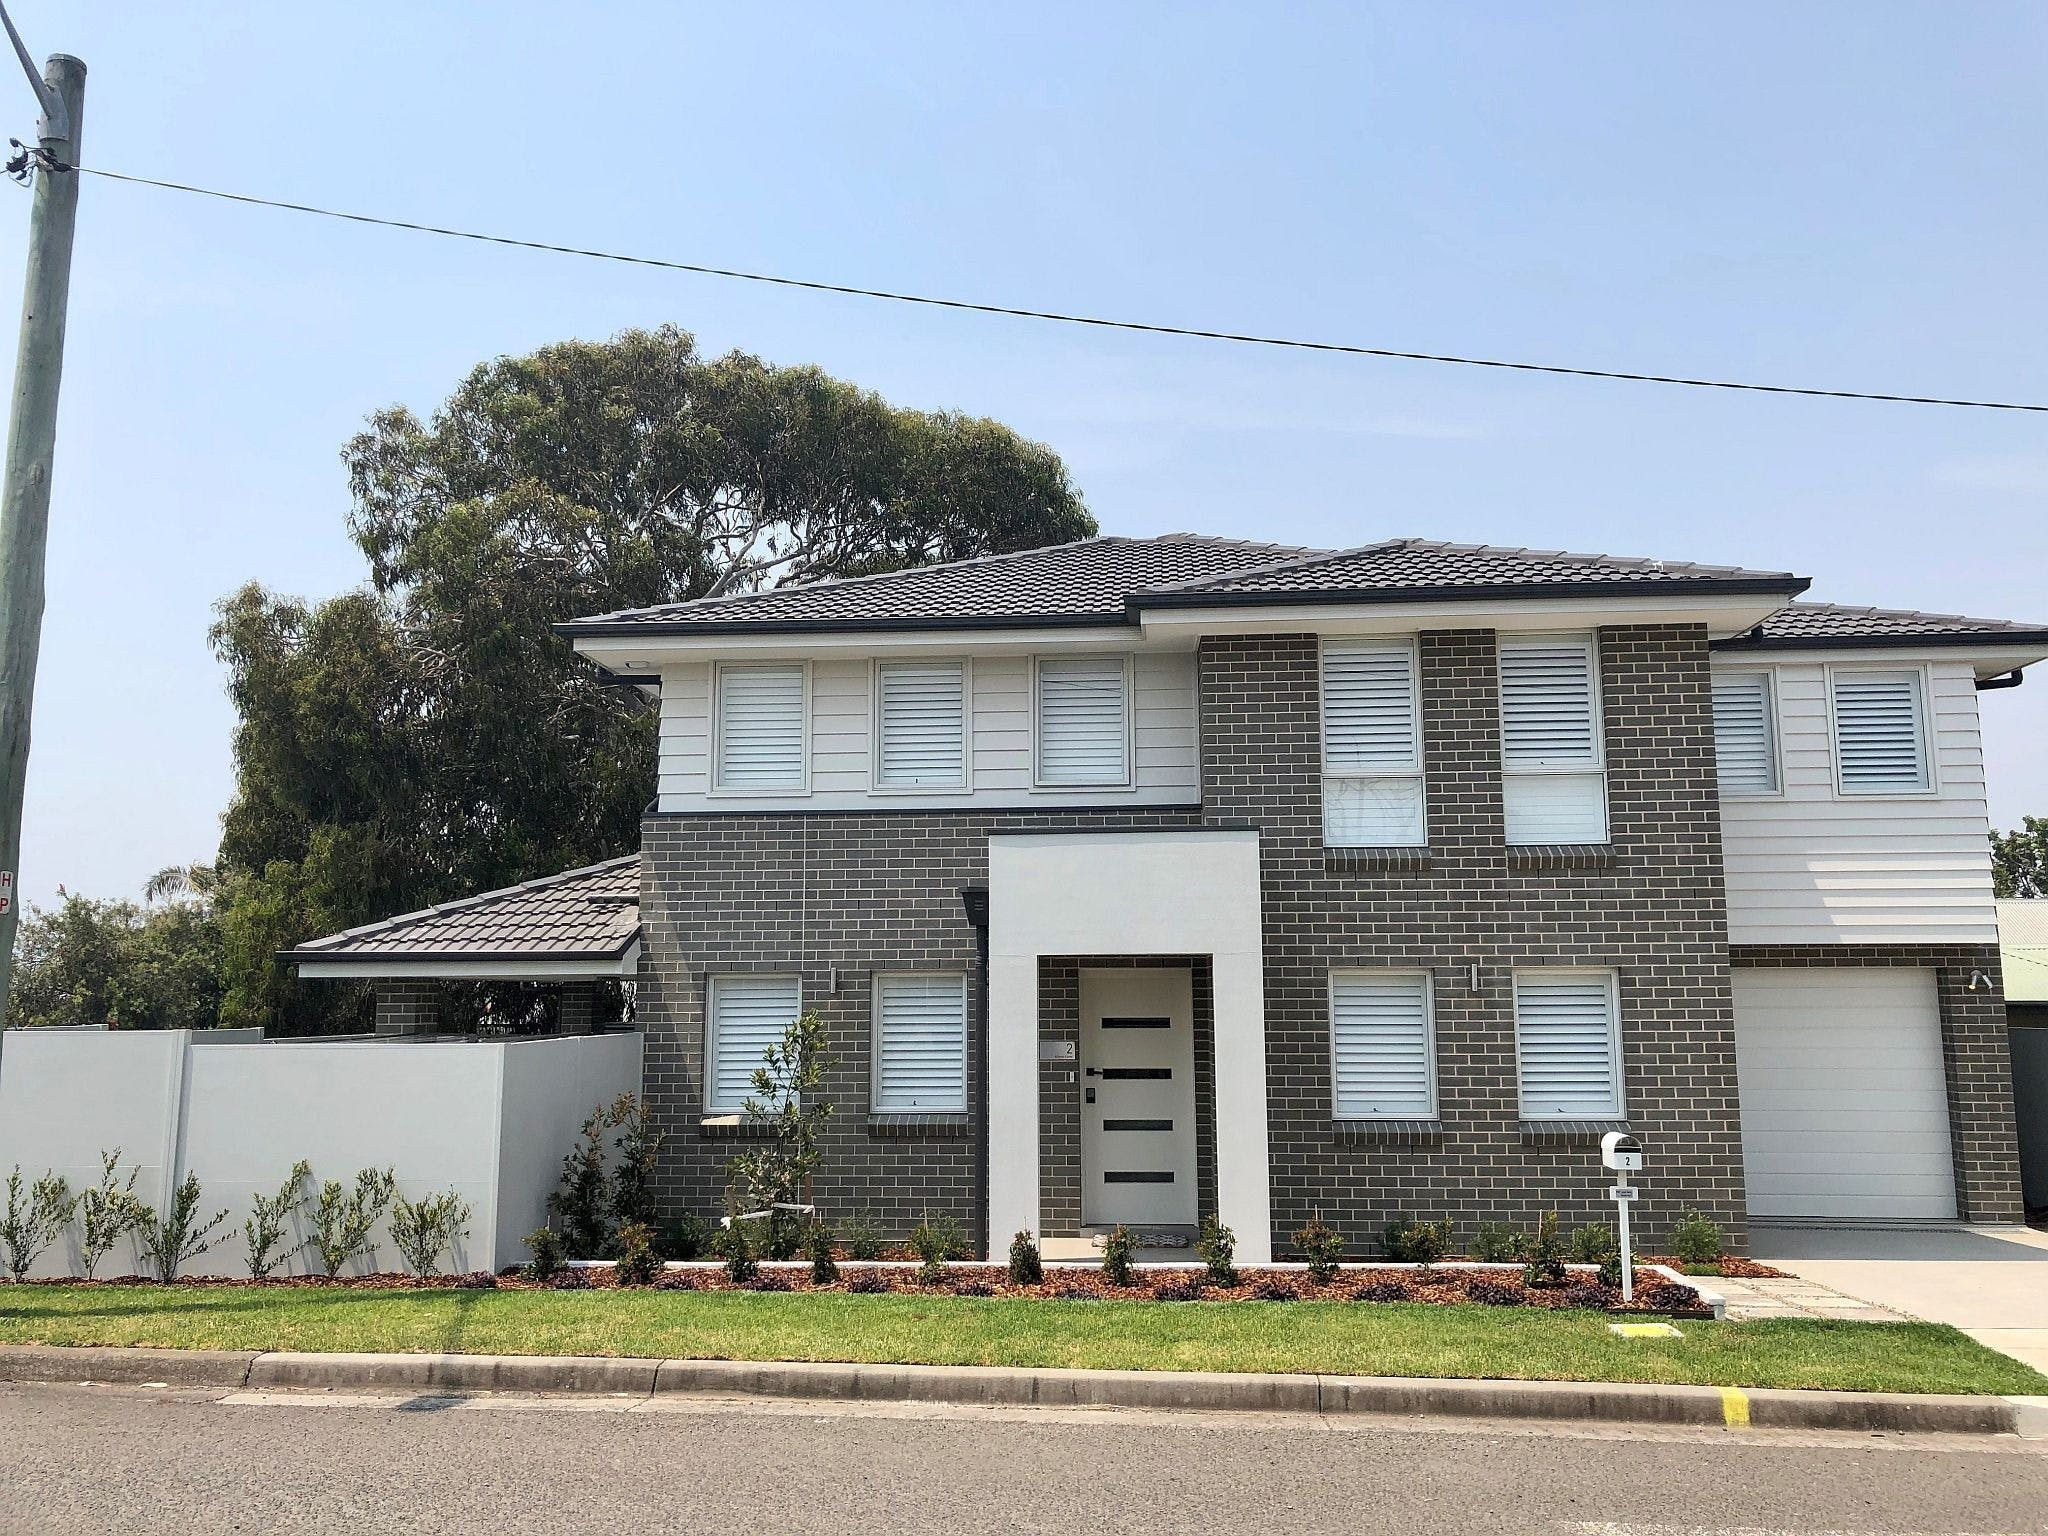 2 Allens Lane - Accommodation Sydney